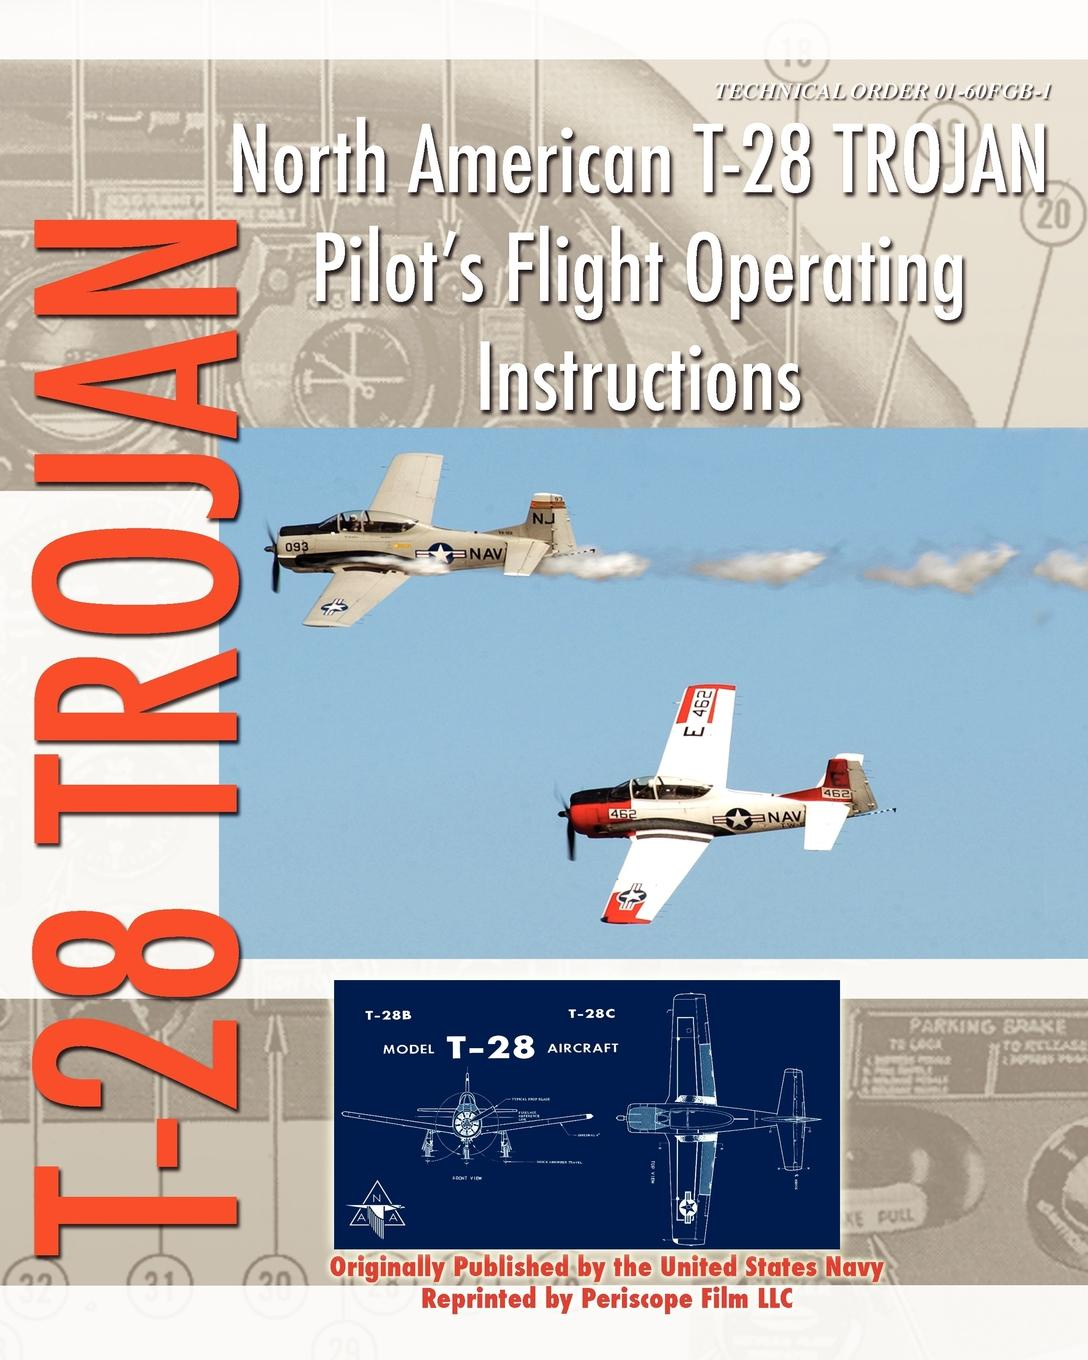 United States Navy North American T-28 Trojan Pilot's Flight Operating Instructions